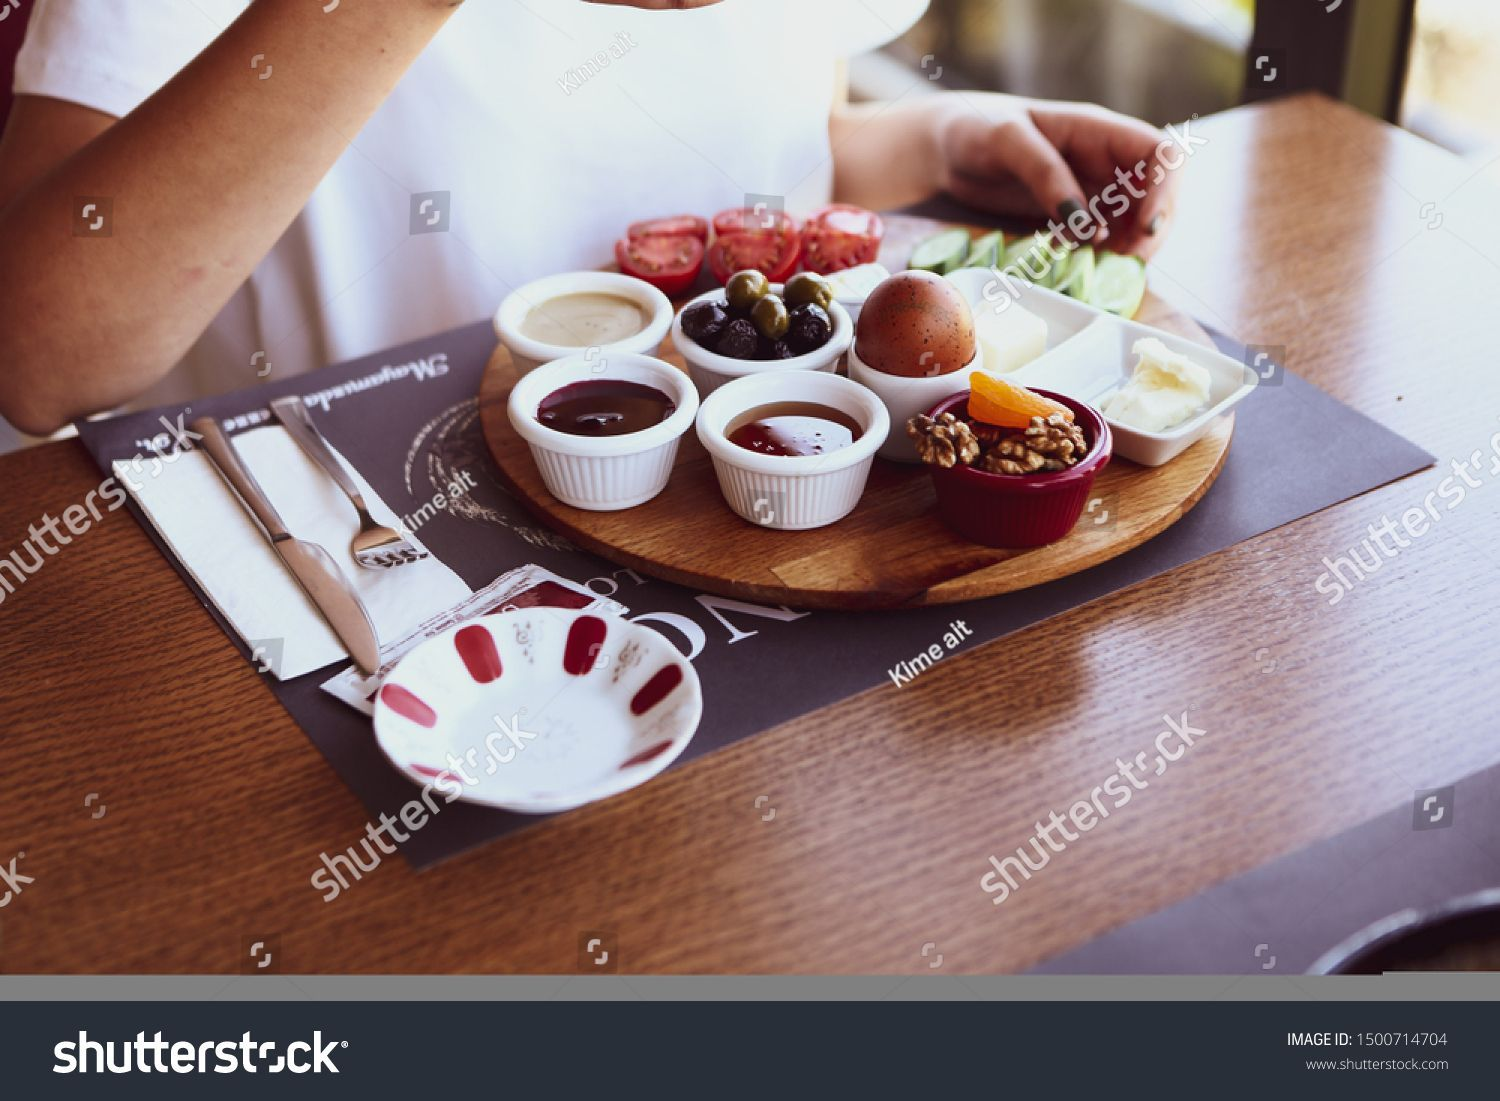 Rich and delicious Turkish breakfast #Sponsored , #Ad, #delicious#Rich#breakfast#Turkish #turkishbreakfast Rich and delicious Turkish breakfast #Sponsored , #Ad, #delicious#Rich#breakfast#Turkish #turkishbreakfast